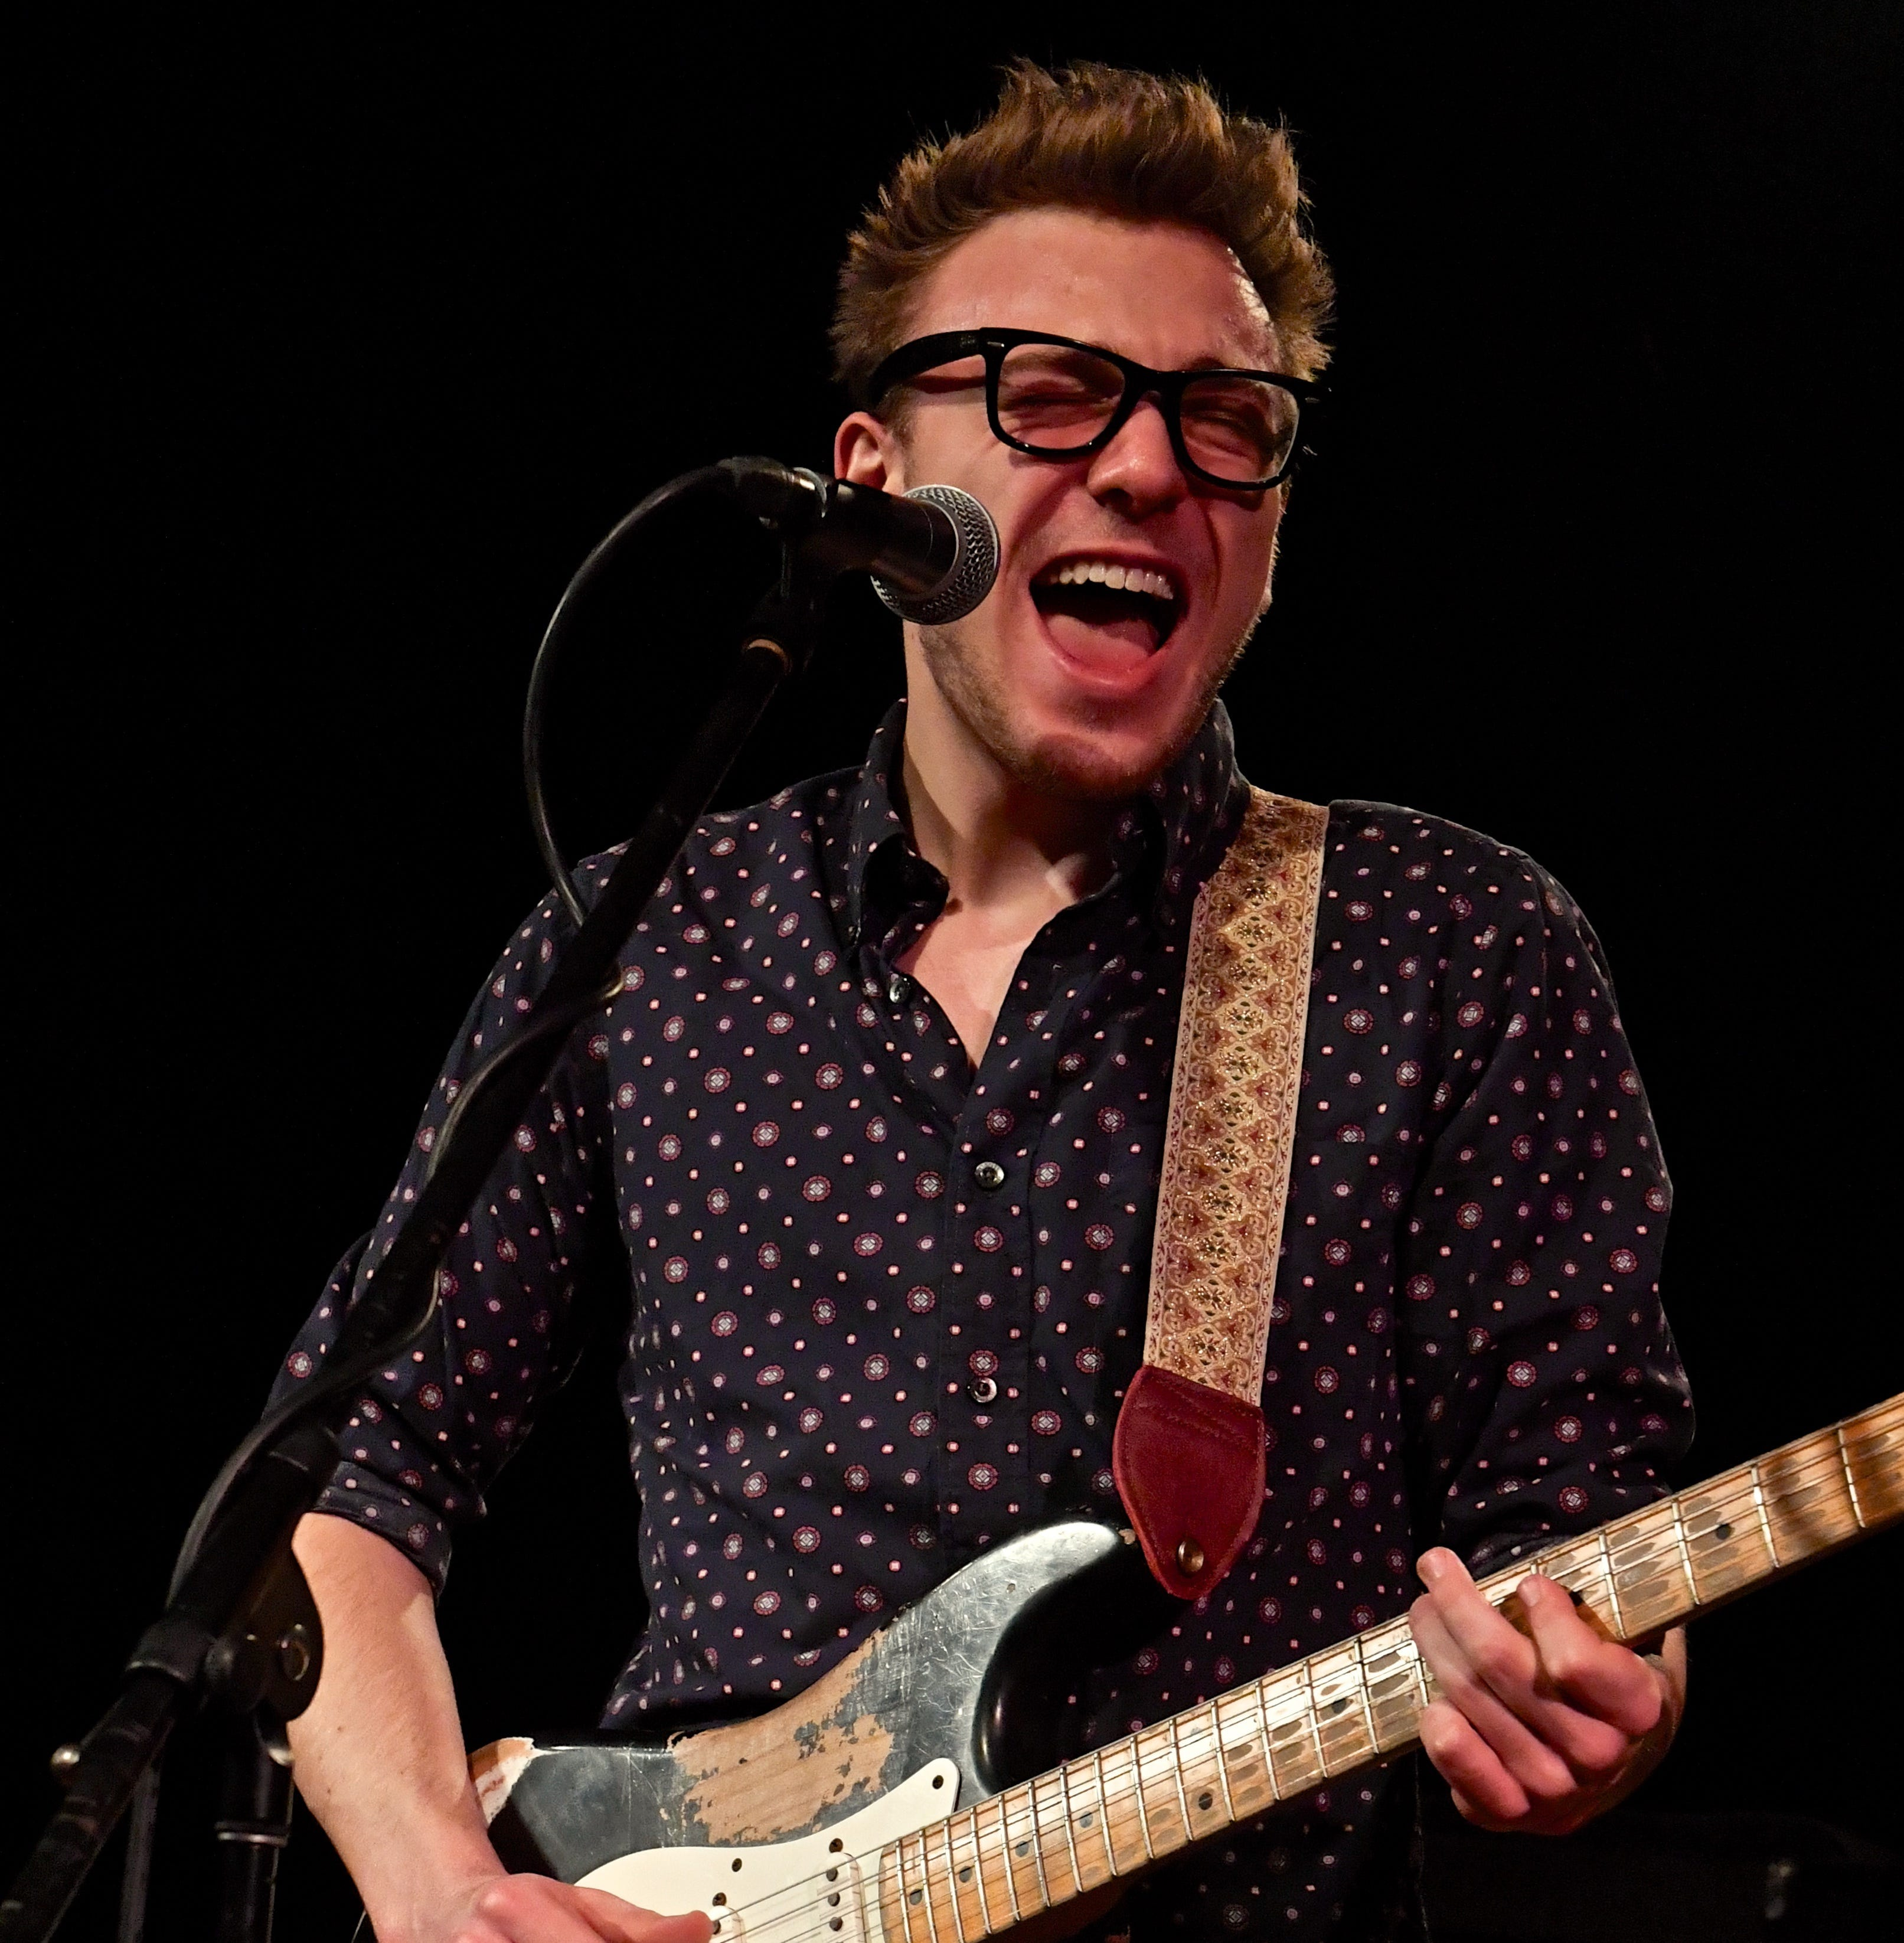 Guitarist Dylan Doyle set for the Falcon: Sights and sounds dazzle the senses